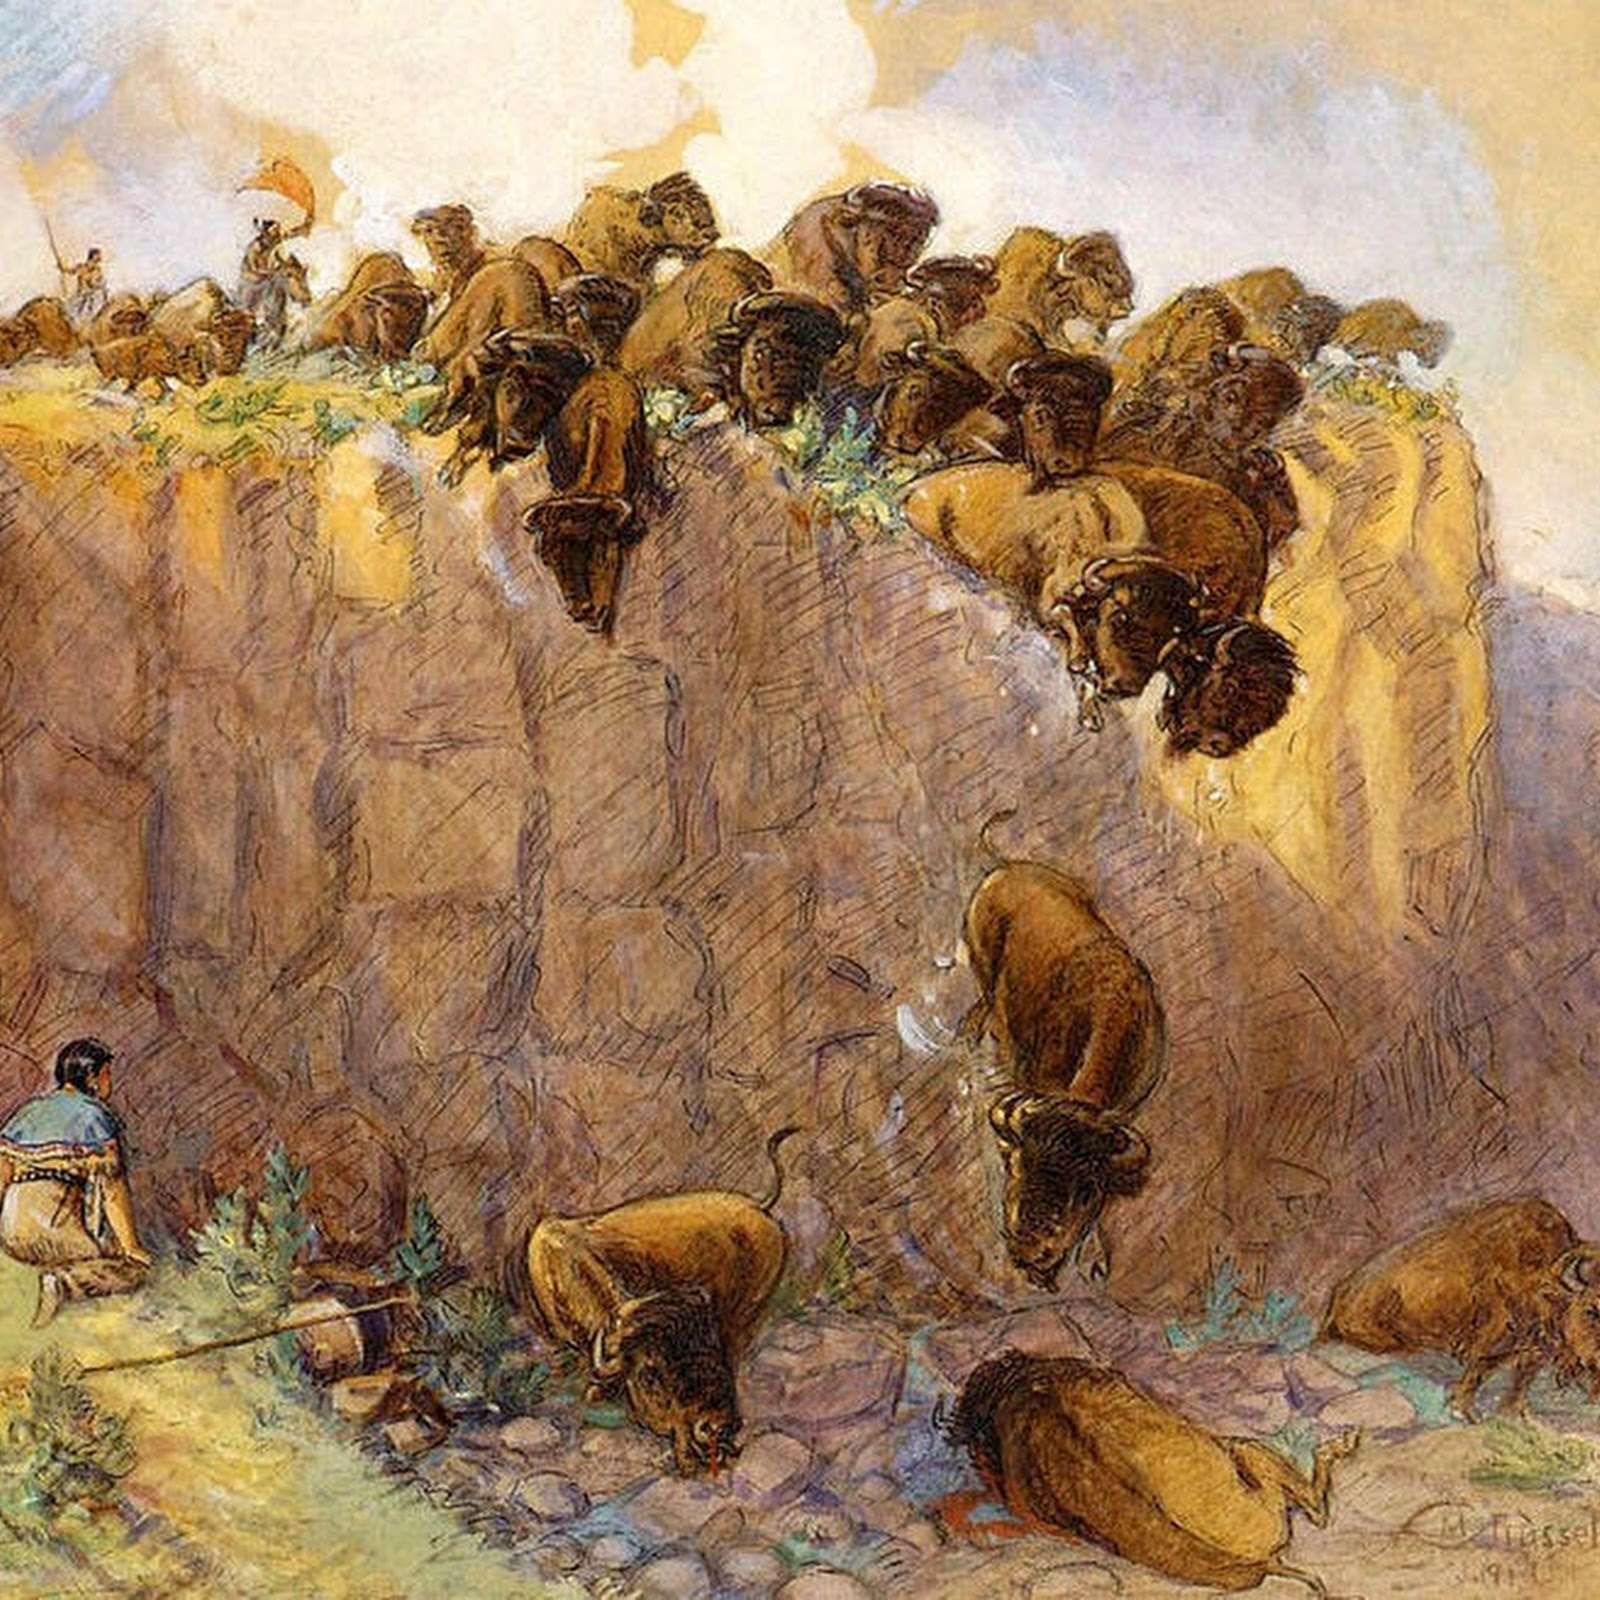 The Buffalo Jumps of North America